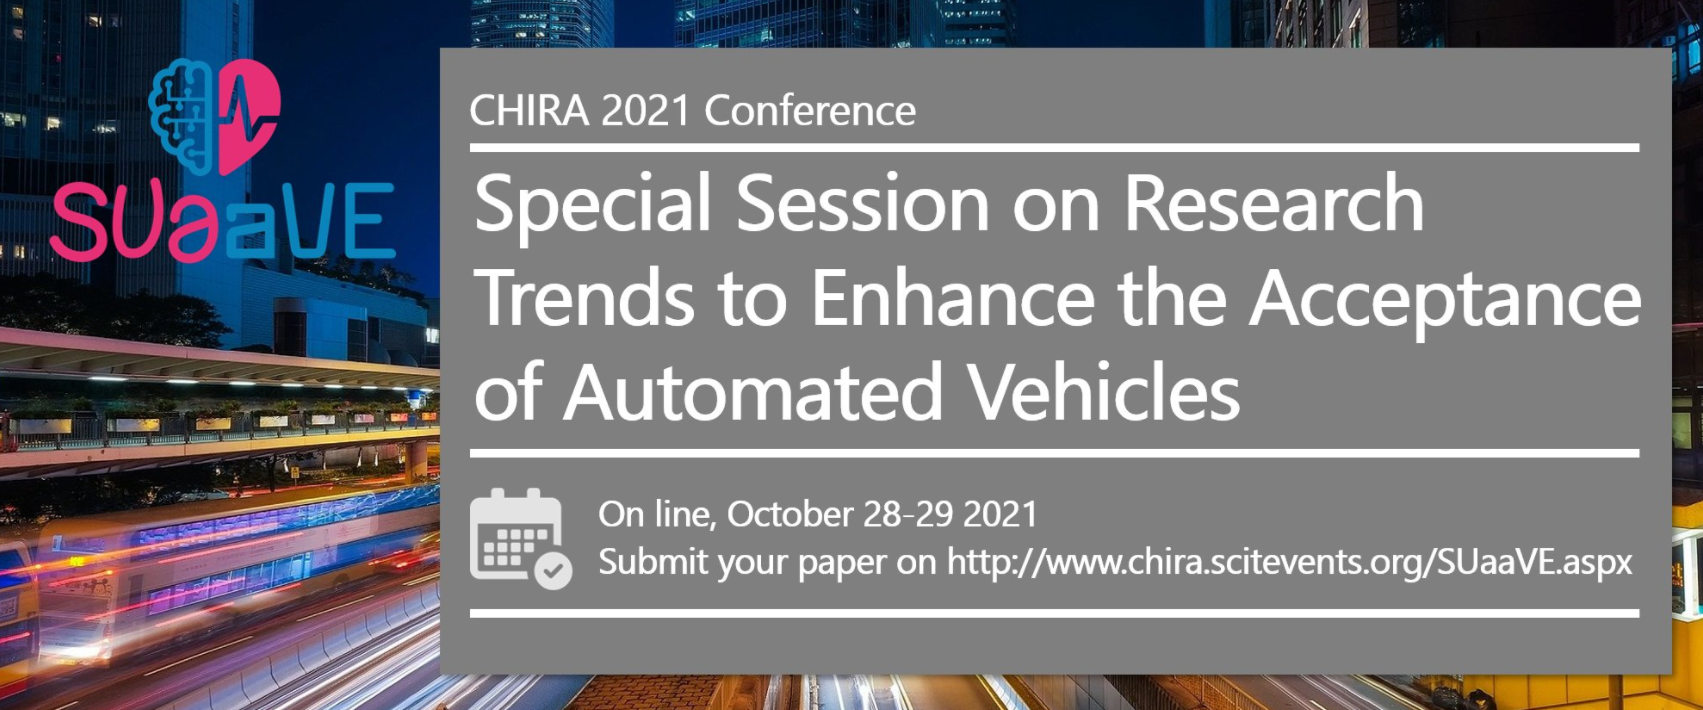 SUaaVE: Research advancements to enhance the acceptance of Automated Vehicles